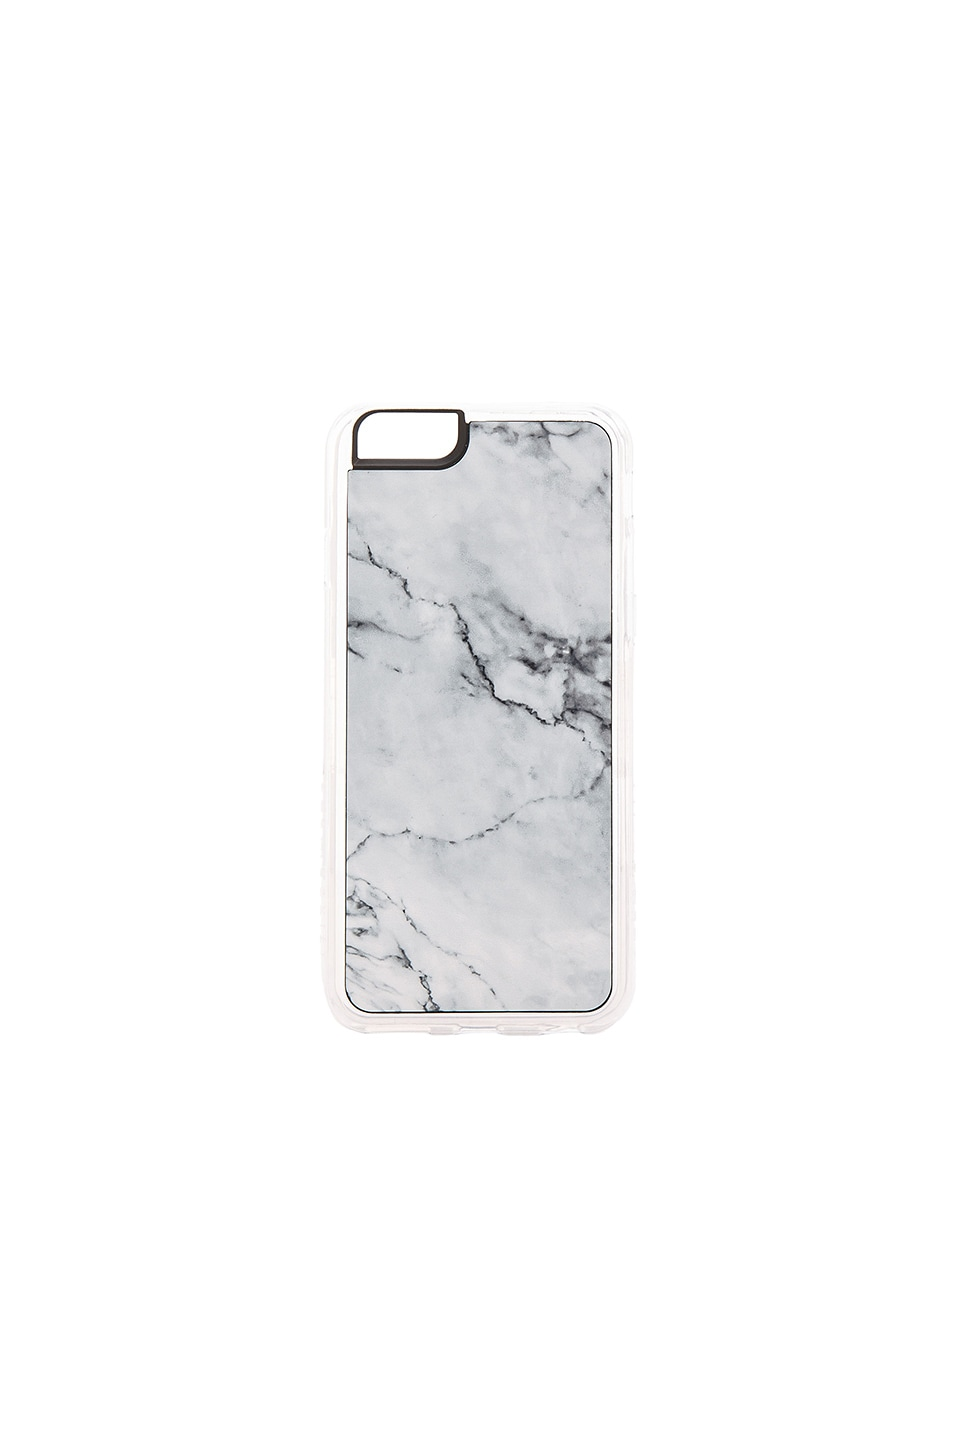 ZERO GRAVITY Stoned iPhone 6/6s Case in Grey & White